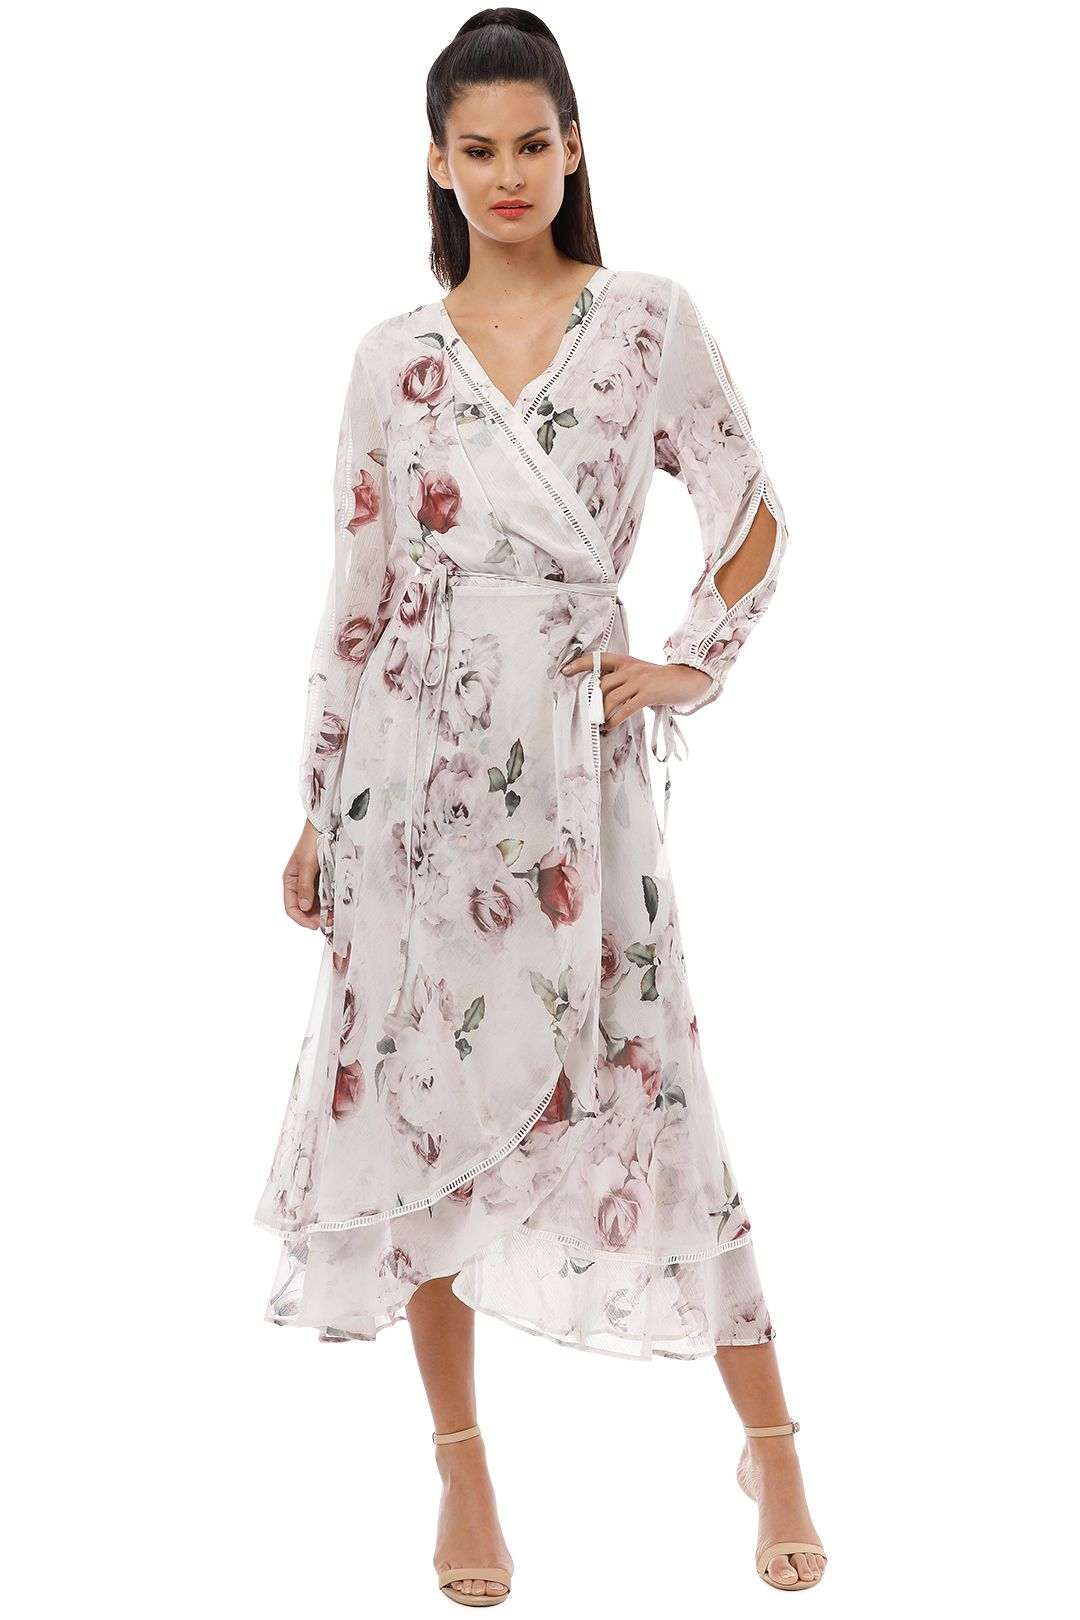 We Are Kindred - Jemima Primrose Dress - White Rose - Front